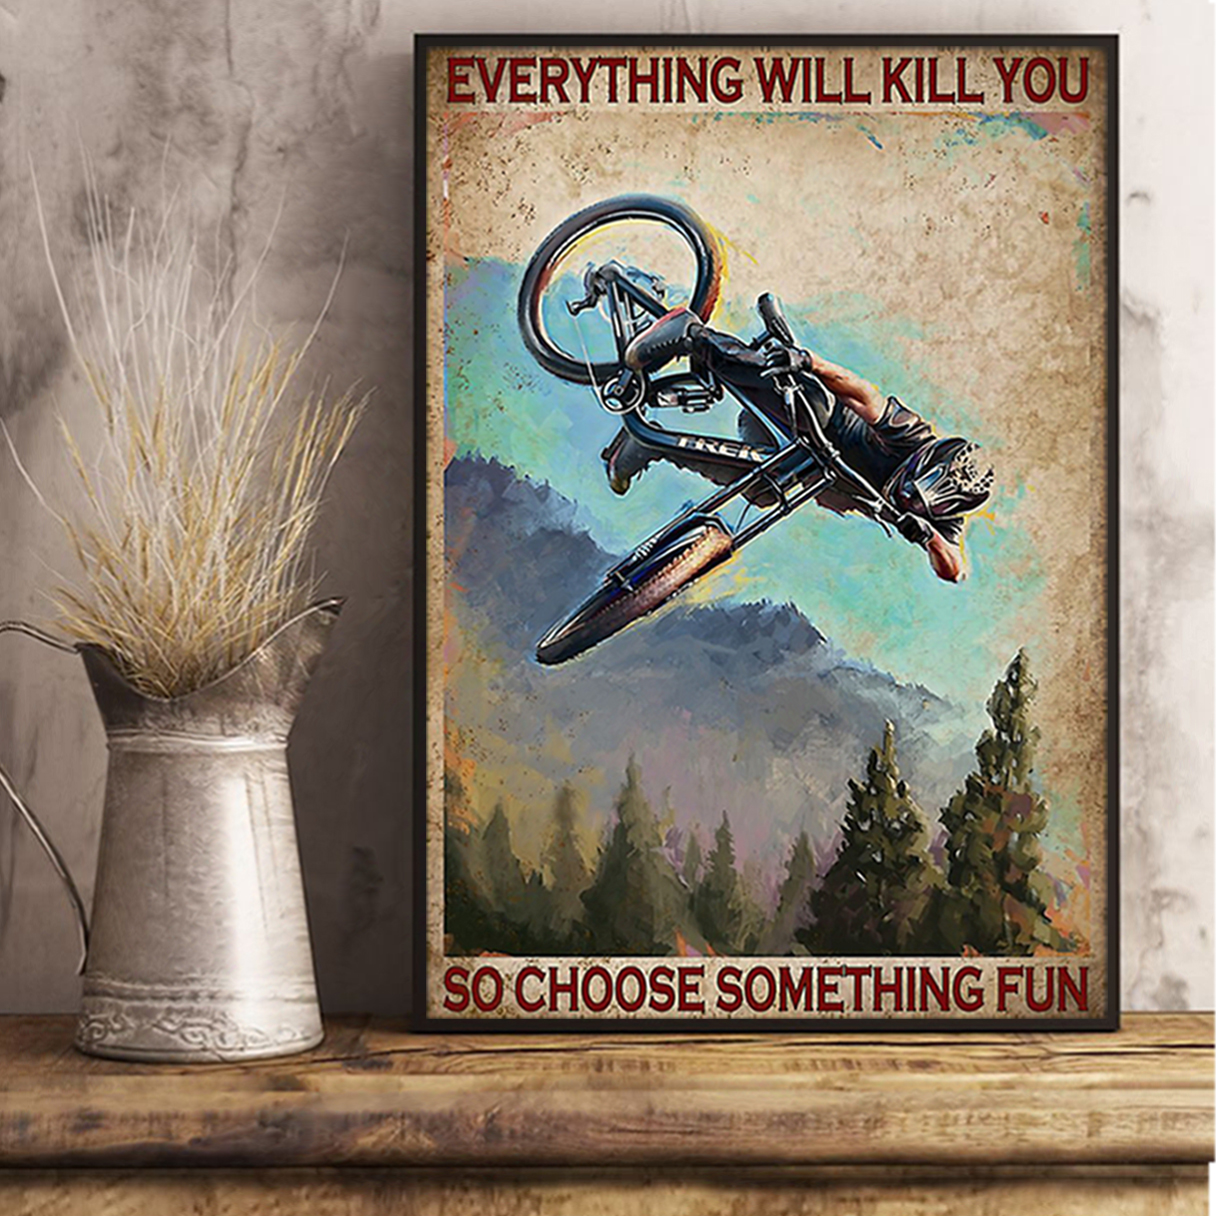 Enduro mountain bike everything will kill you so choose something fun poster A2